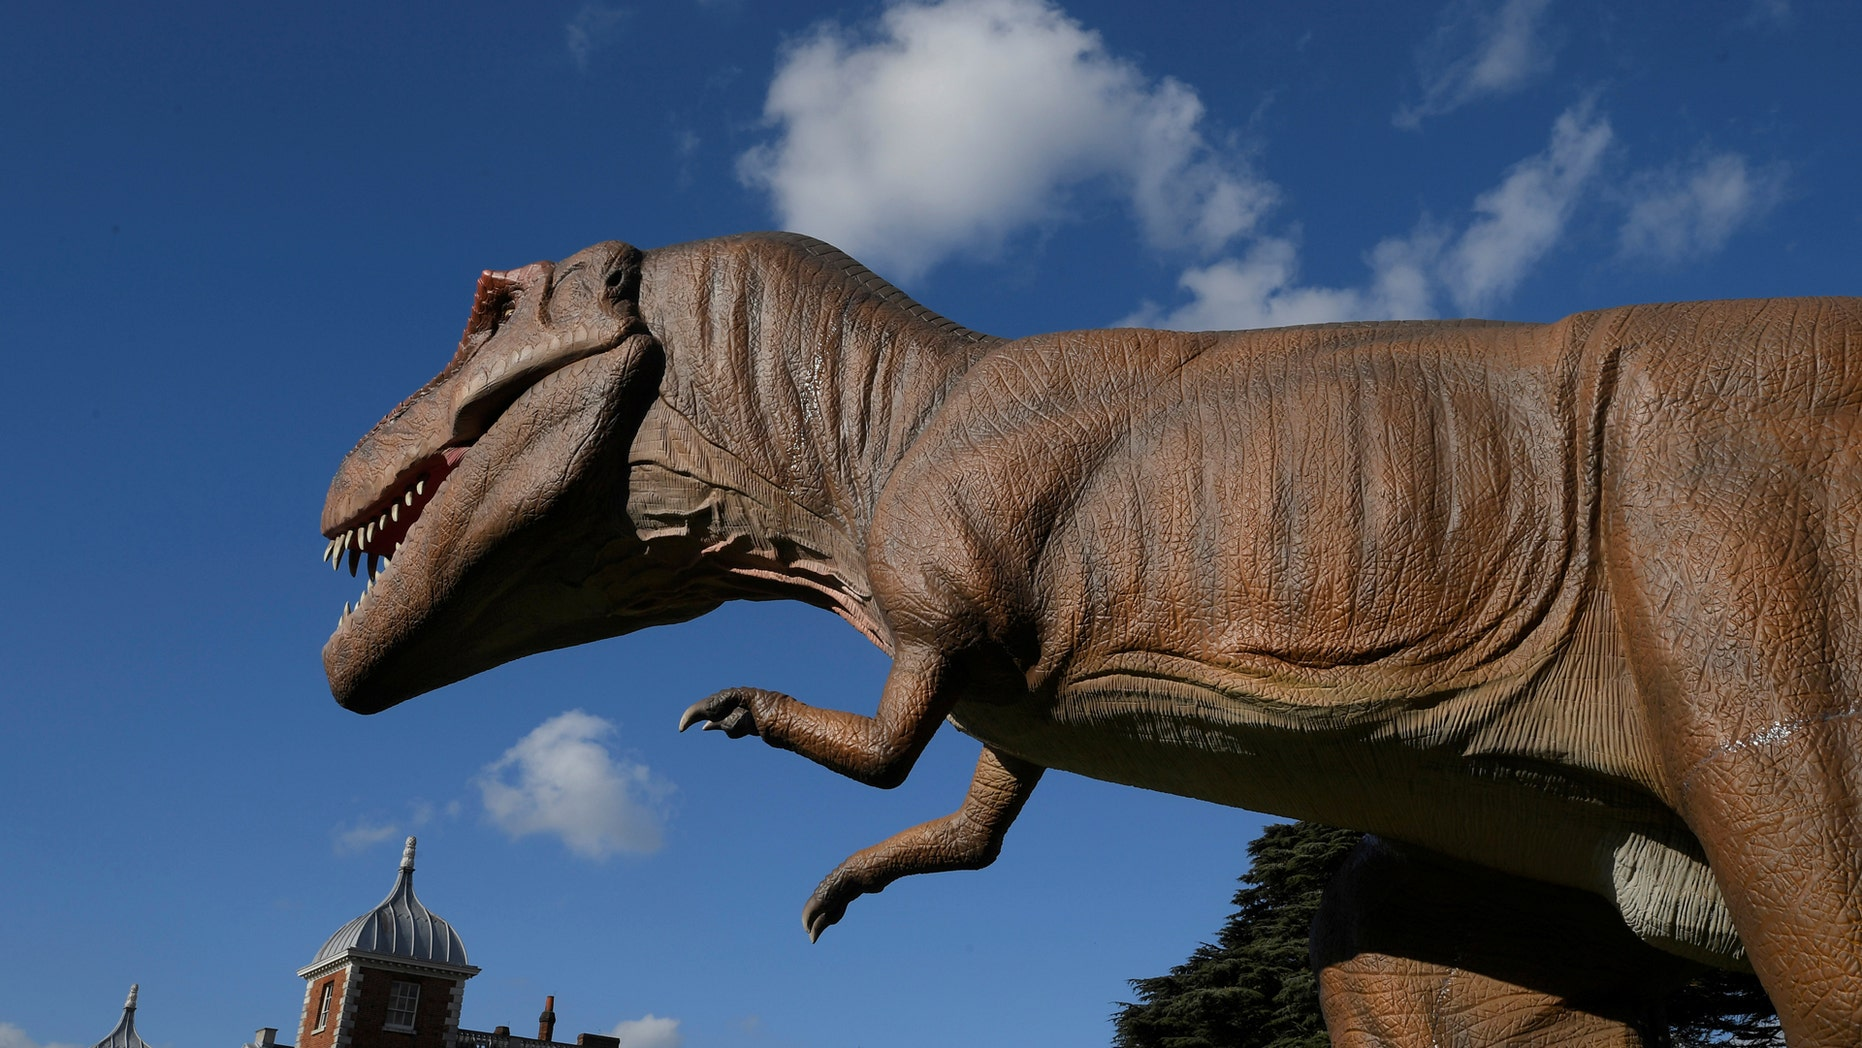 File photo: An animatronic life-size dinosaur is seen ahead of an interactive exhibition, Jurassic Kingdom, at Osterley Park in west London, Britain, March 31, 2017. (REUTERS/Toby Melville)